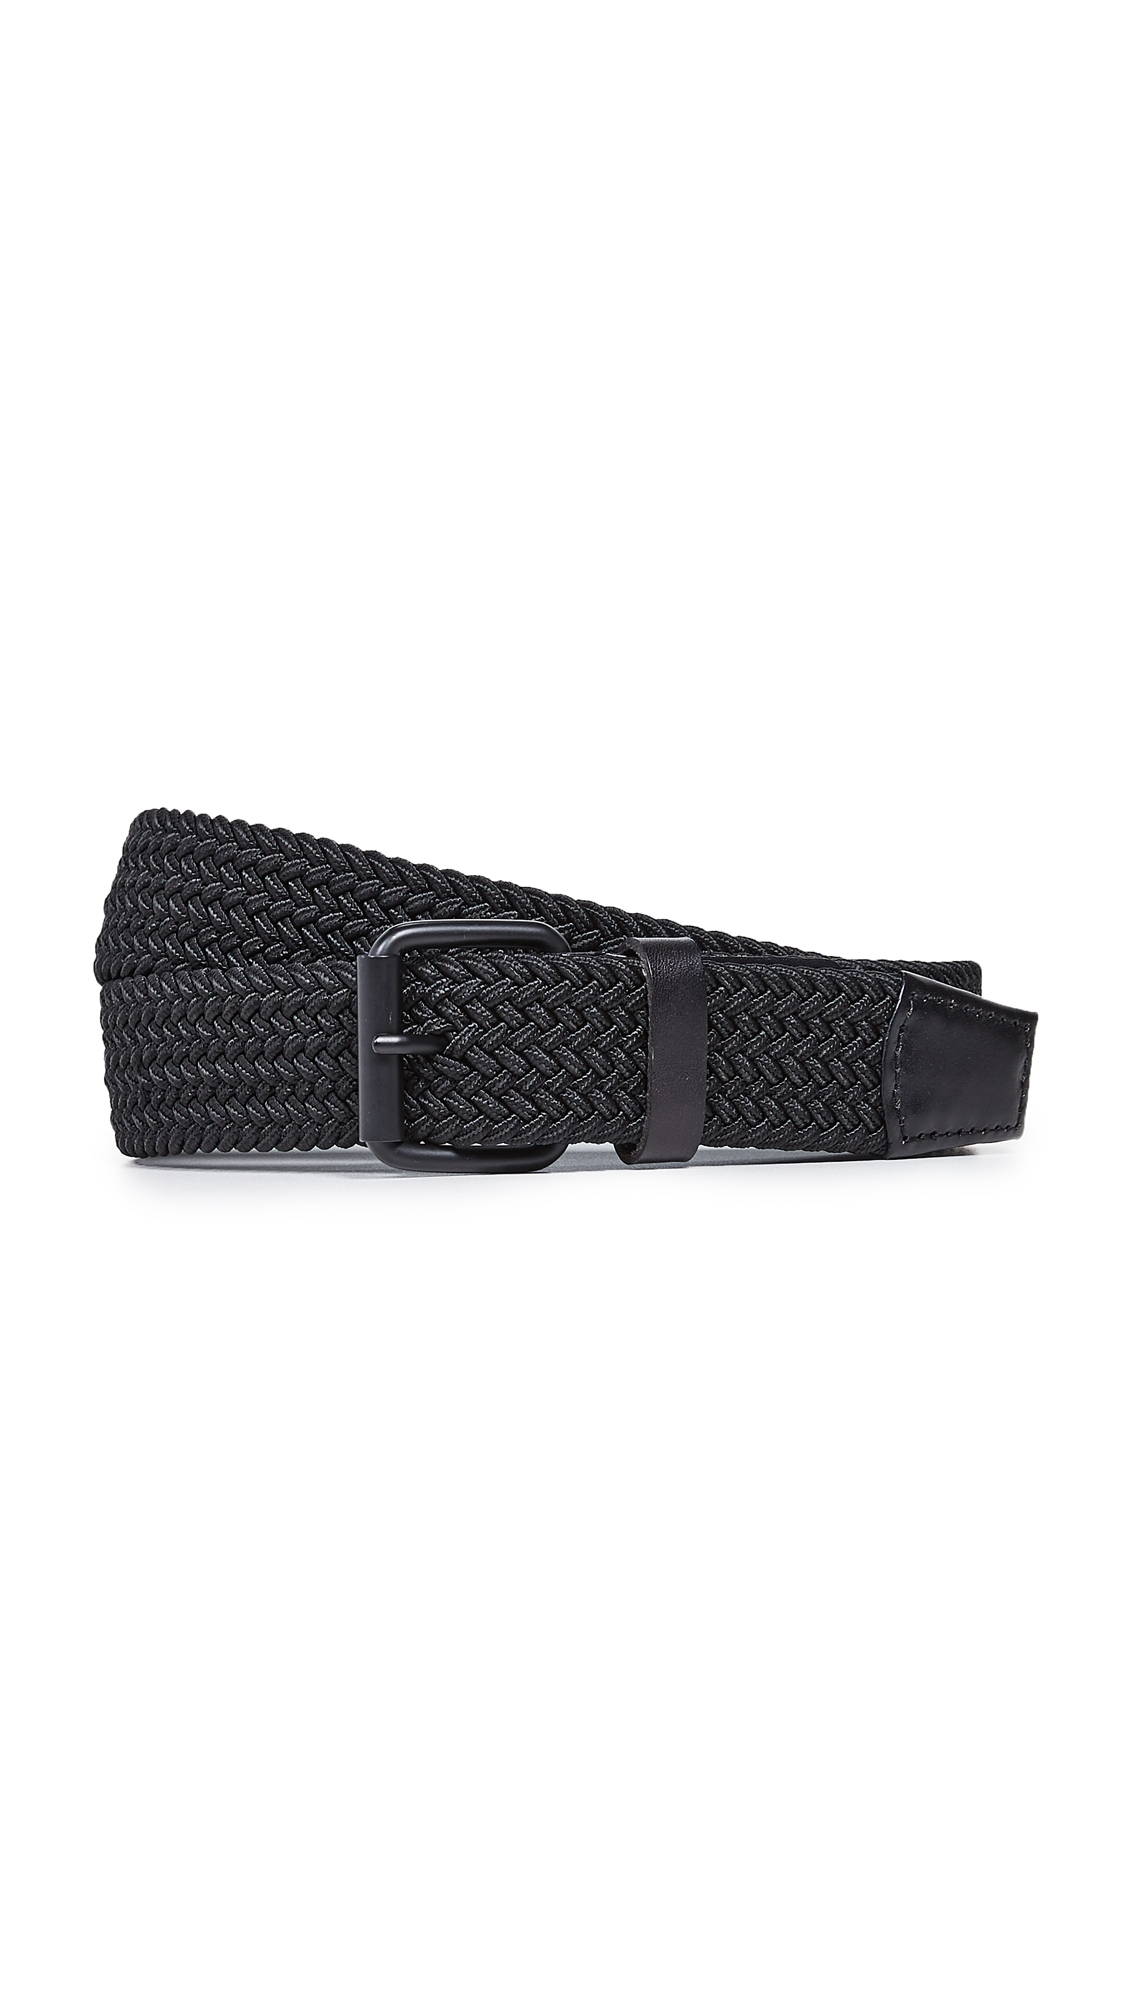 Saturdays Surf Nyc Belts SHANE BELT